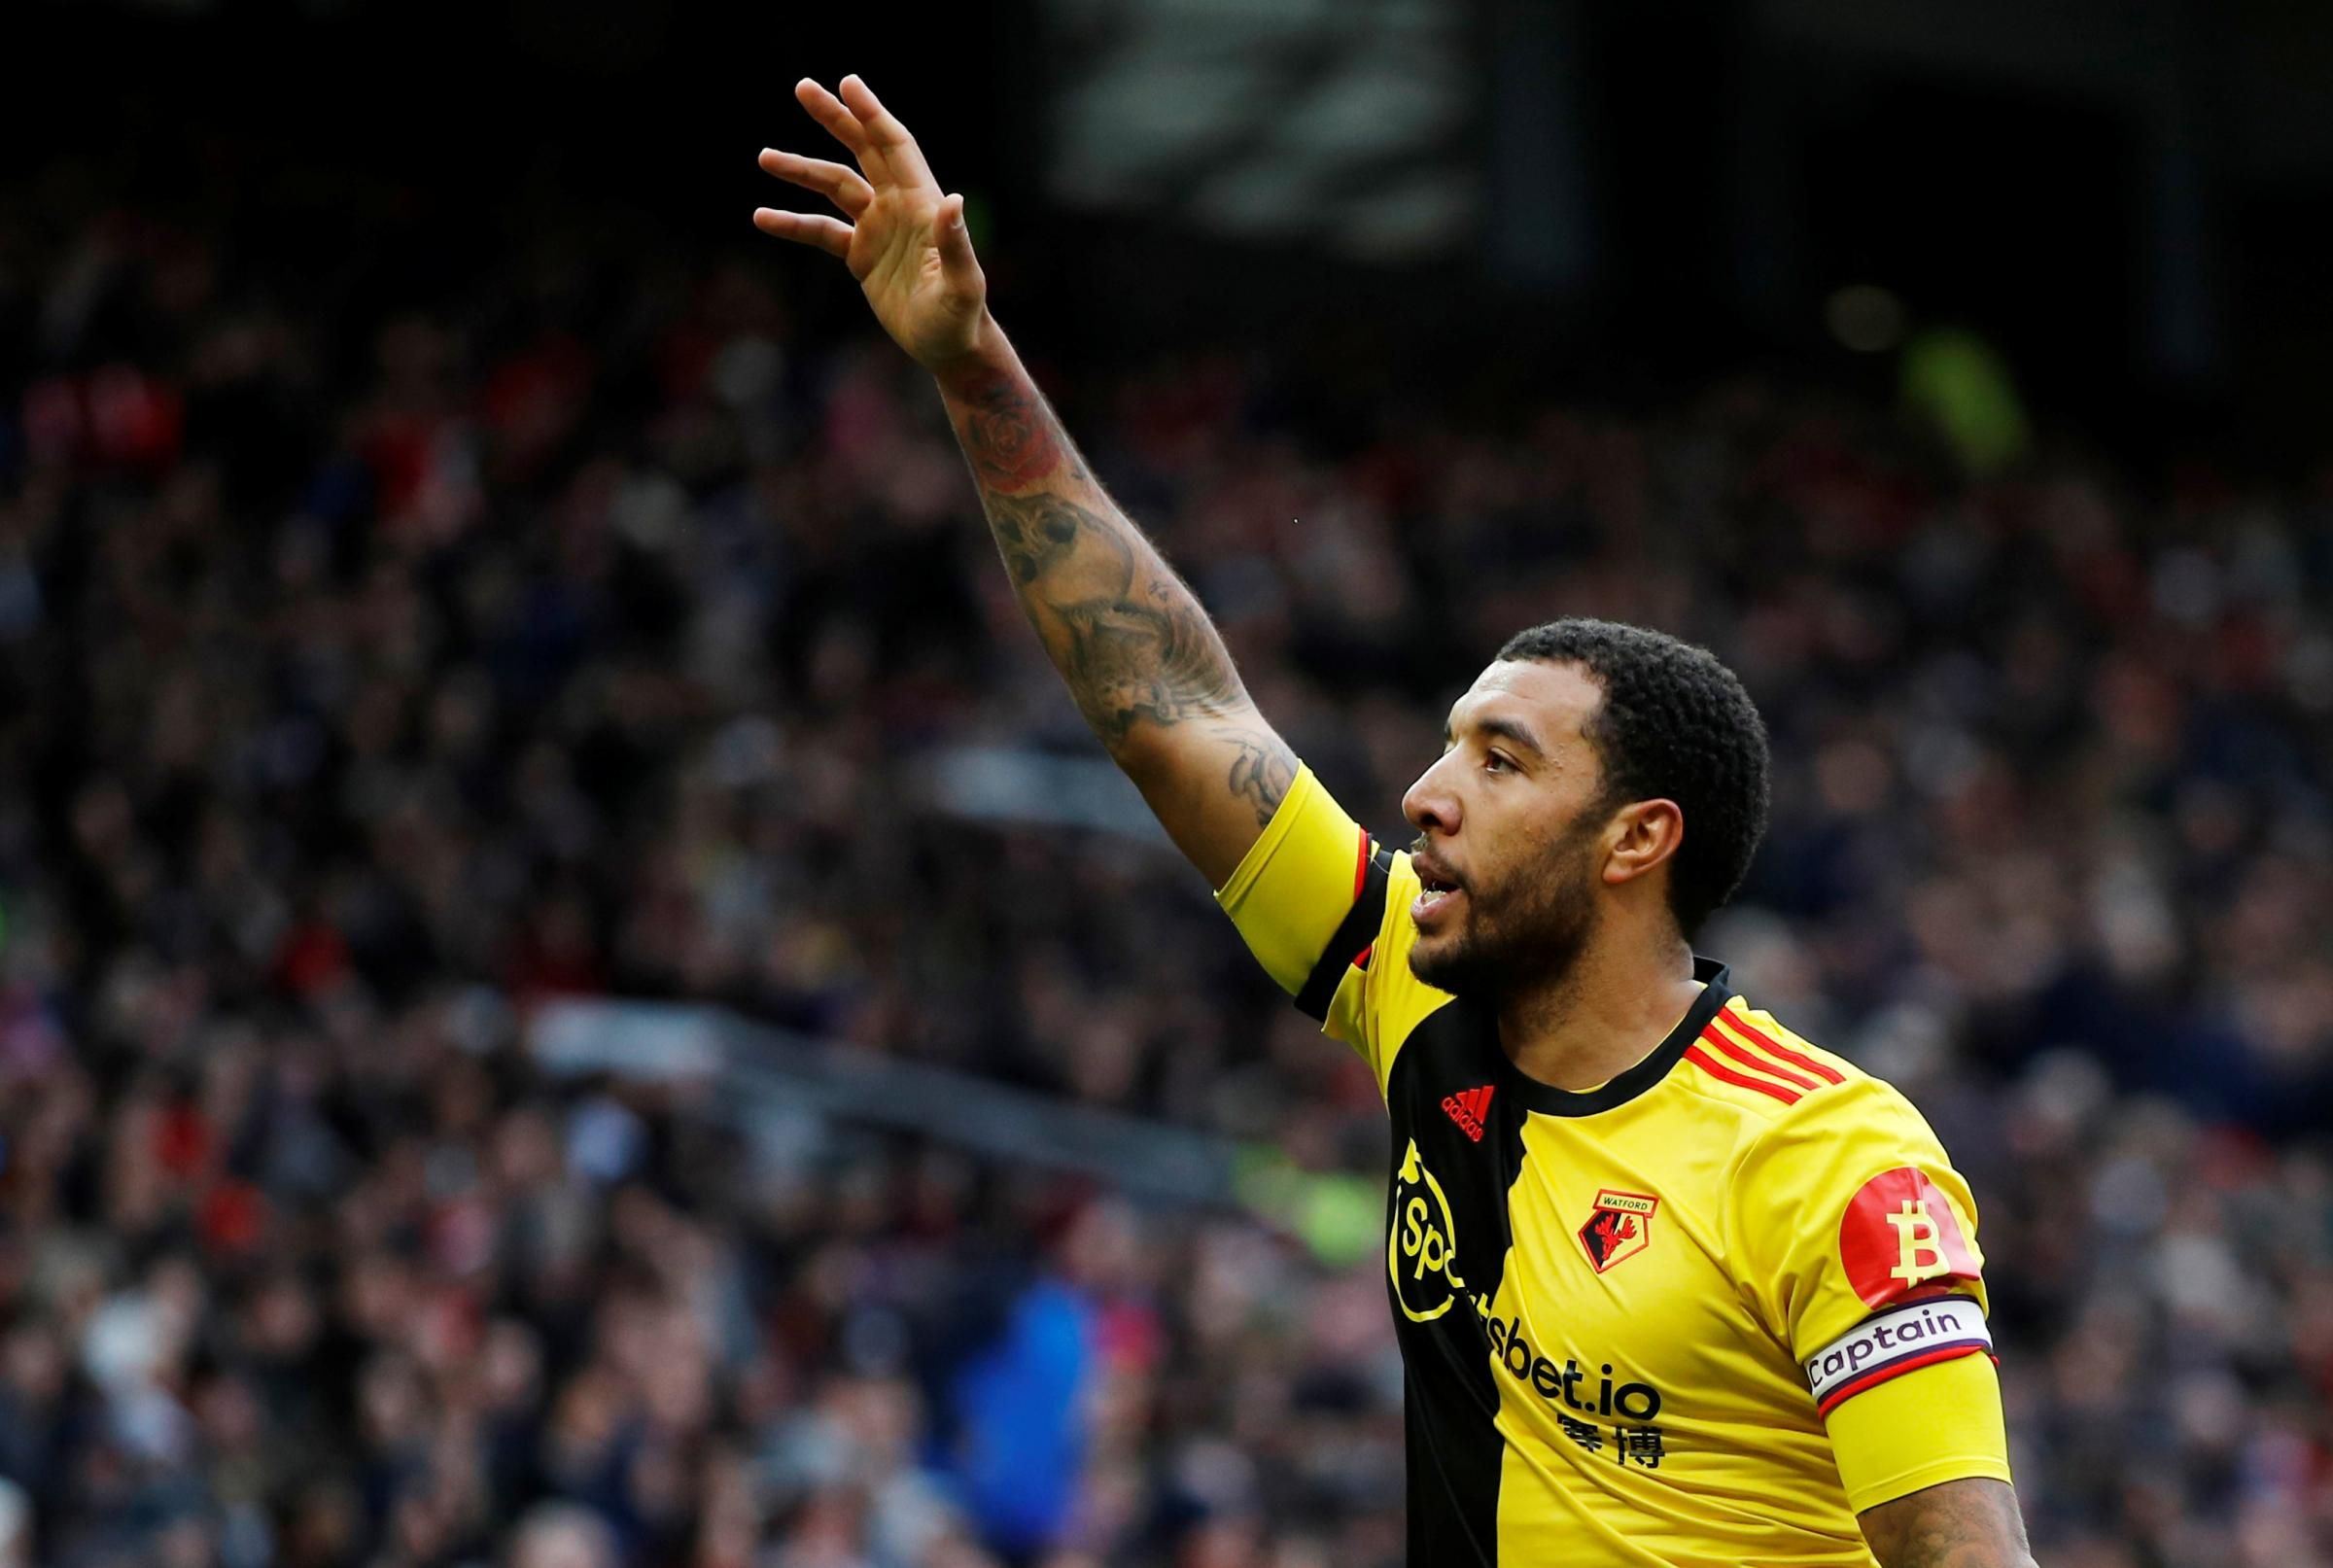 Watford captain Troy Deeney thinks Premier League season must be completed